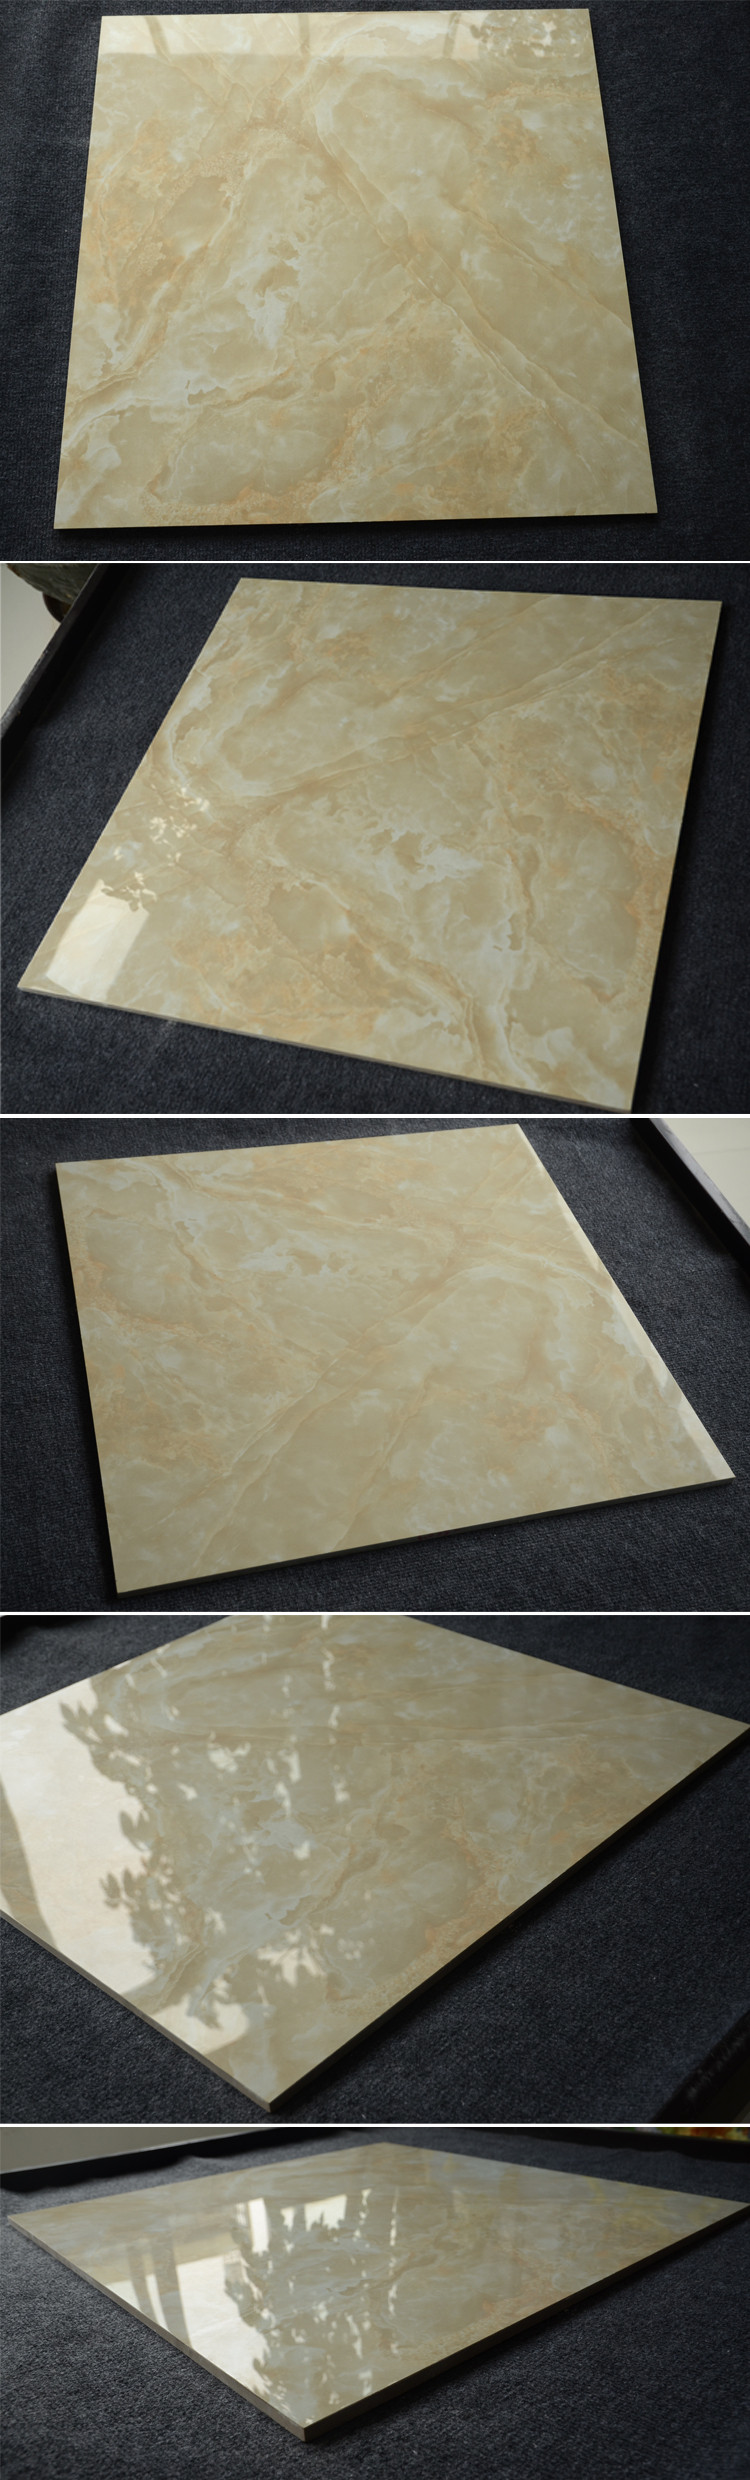 Hs607gn best sell manufacturer kitchen gres porcellanato floor tiles hs607gn best sell manufacturer kitchen gres porcellanato floor tiles dailygadgetfo Choice Image